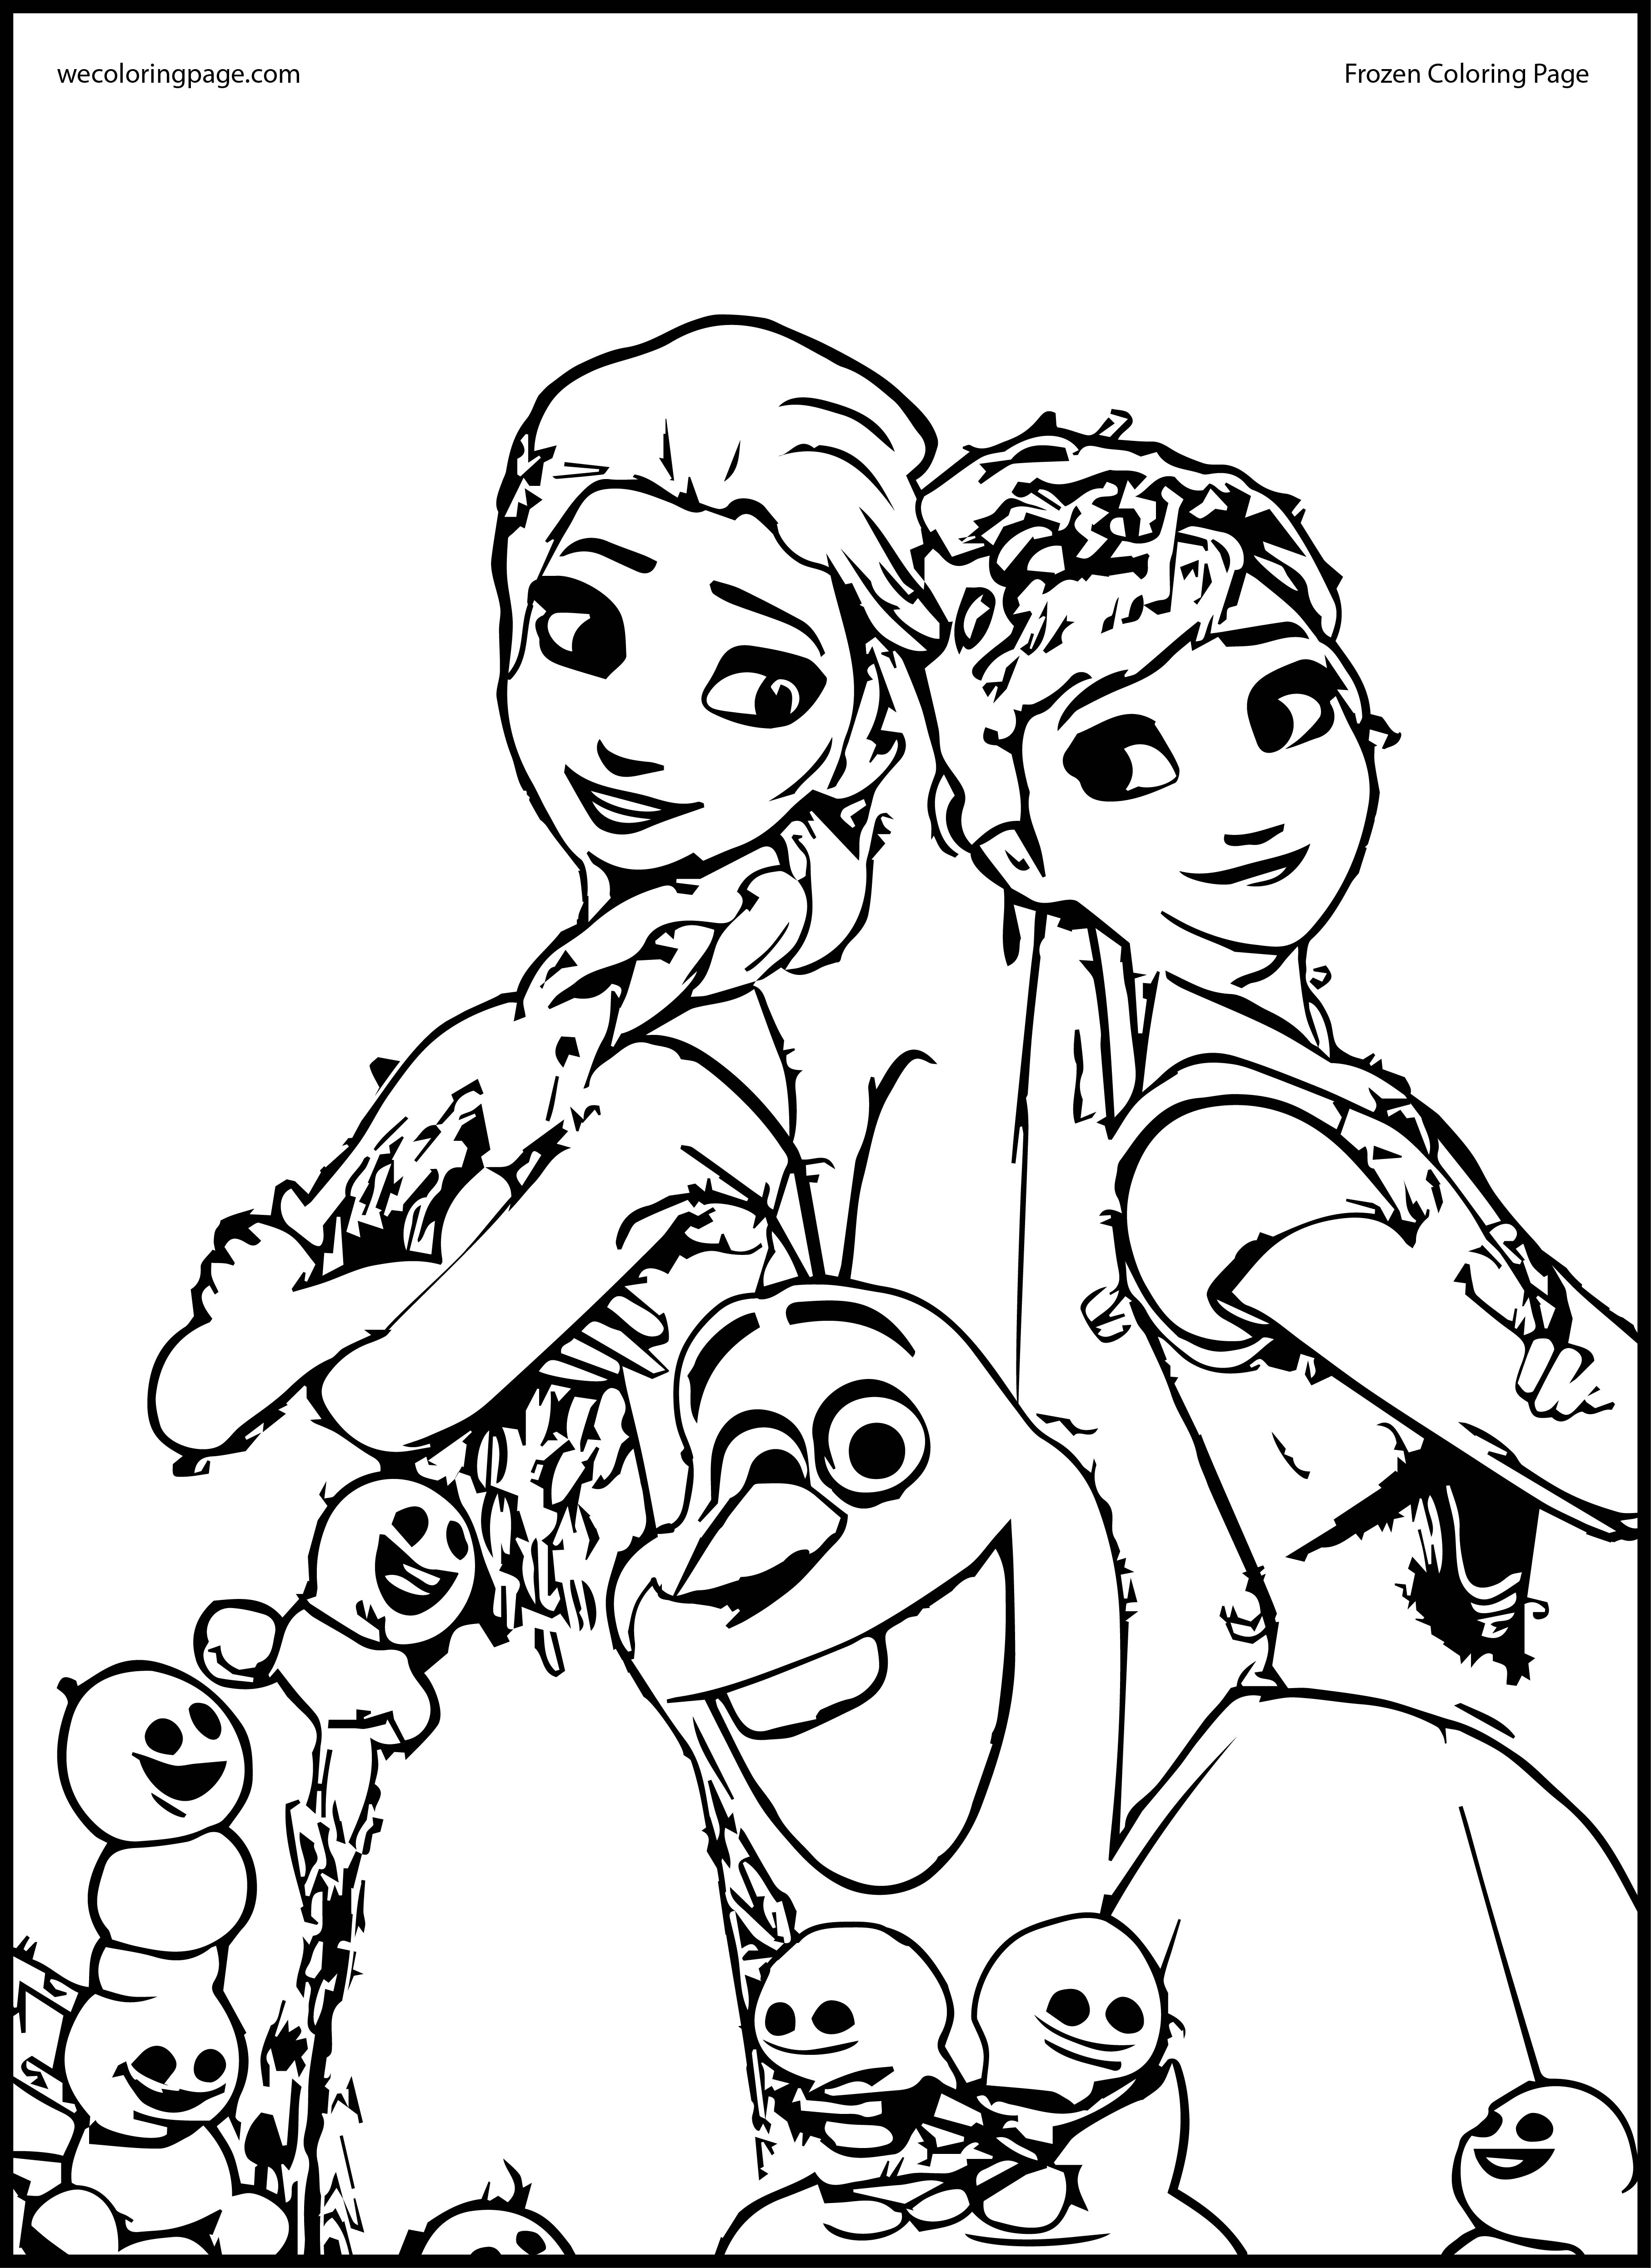 25 Frozen Fever Coloring Pages Images   FREE COLORING ...